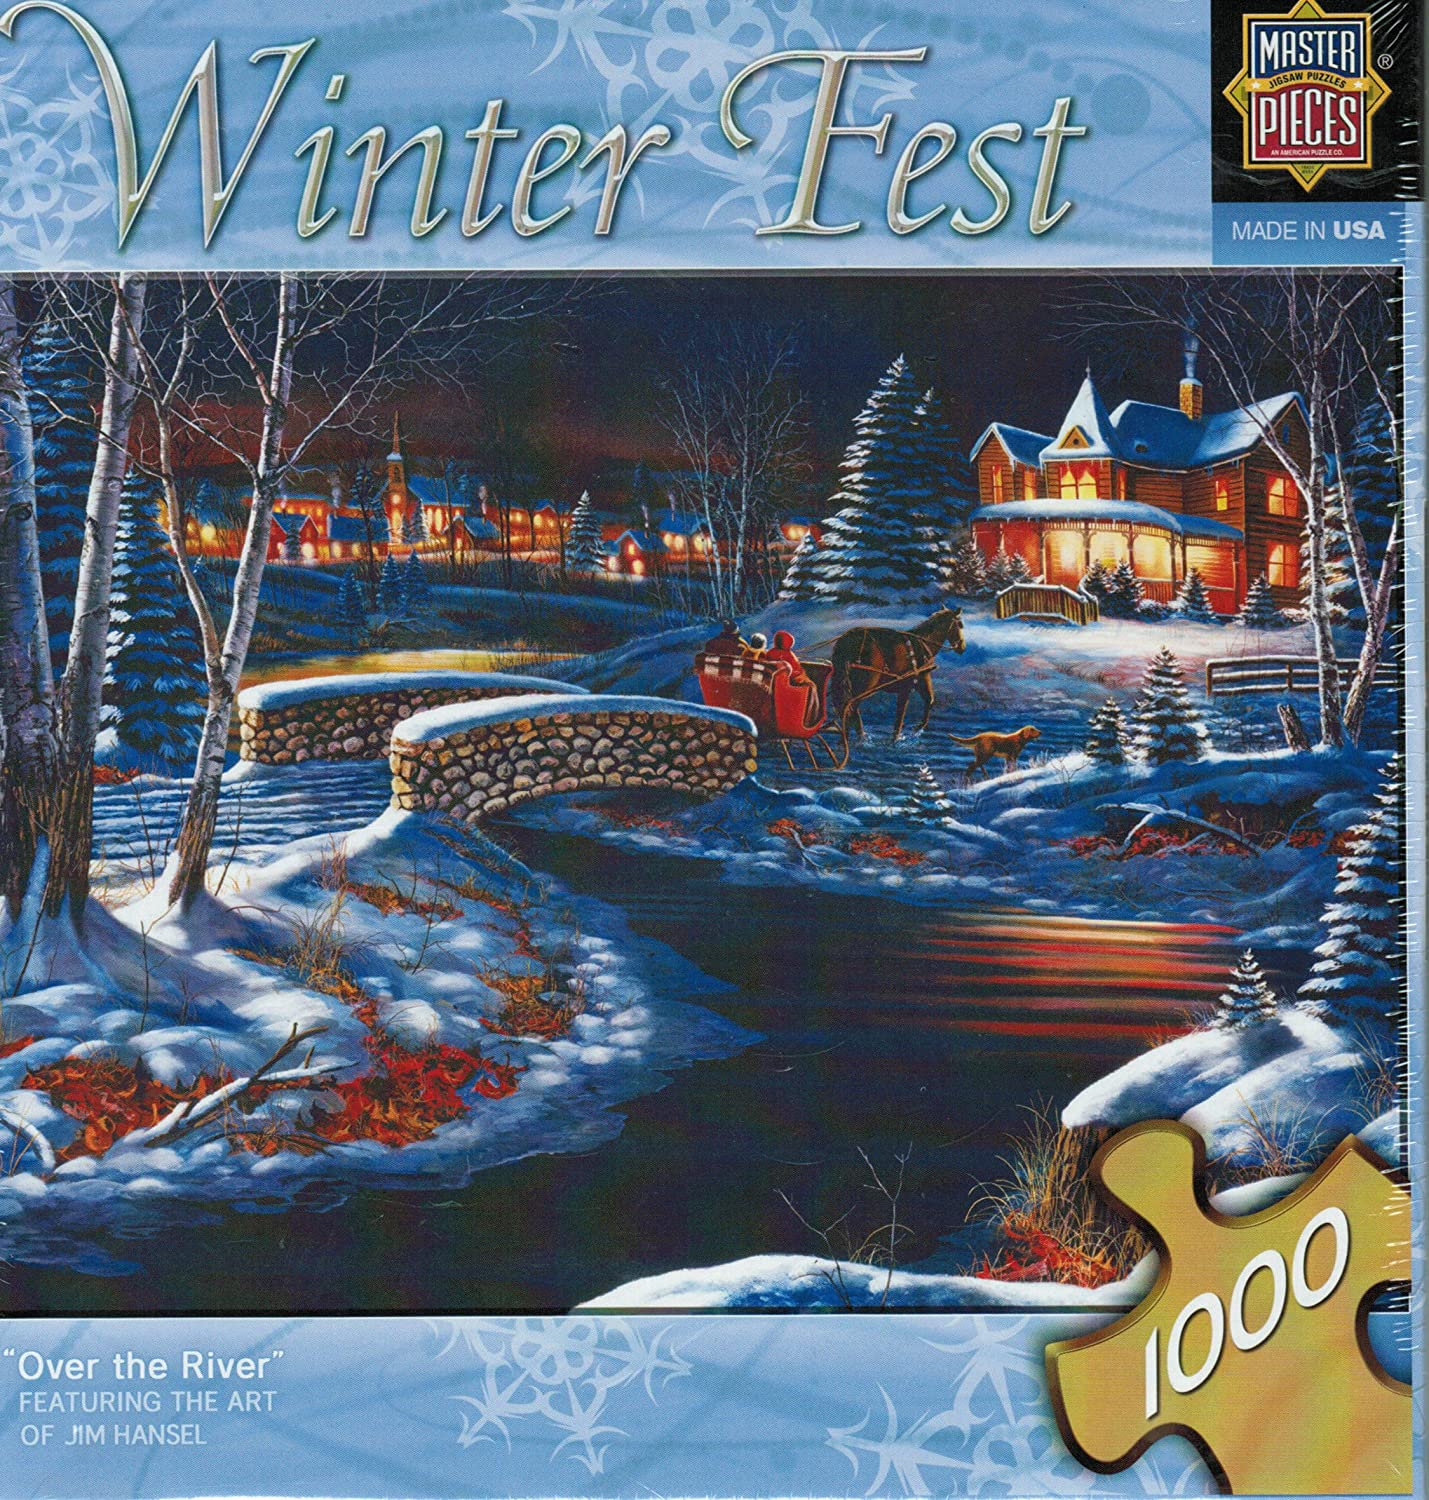 Winter Fest Over the River by Jim Hansel 1000 piece Jigsaw Puzzle Masterpieces Puzzle Co.